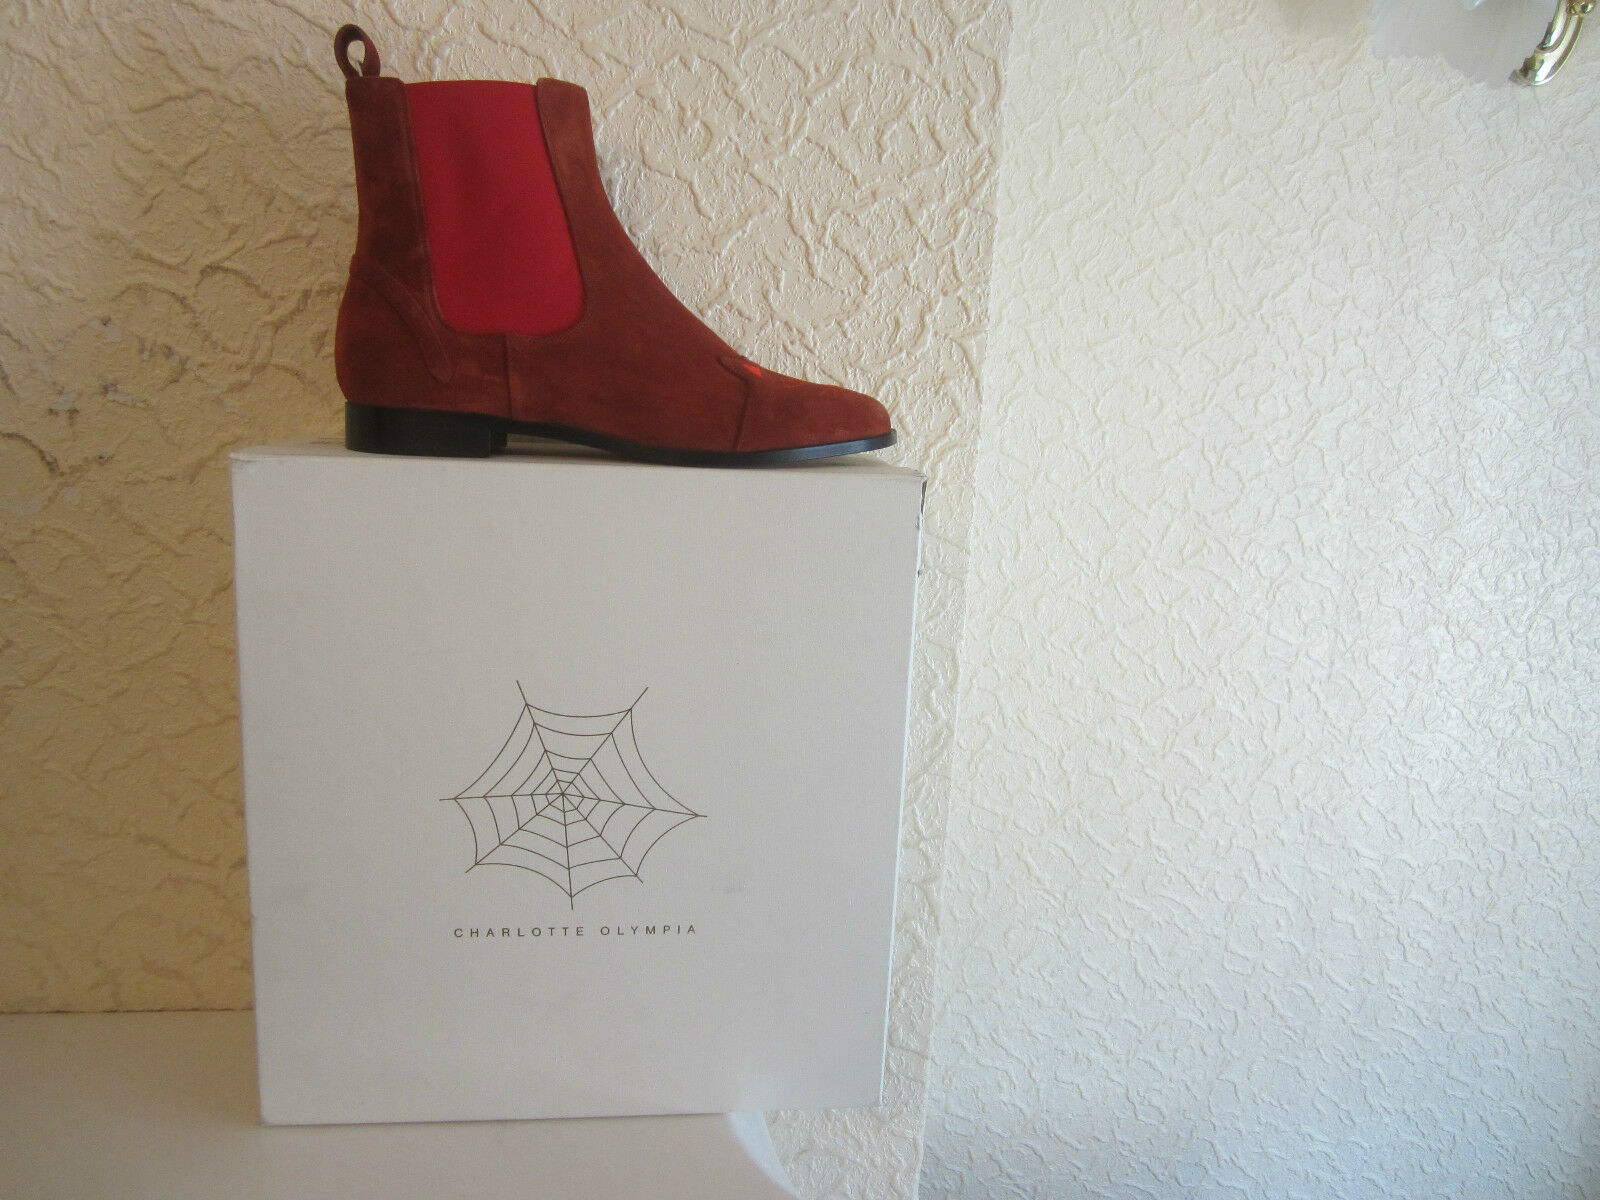 Charlotte Olympia 'Chelsea Cat' Suede Ankle Boots